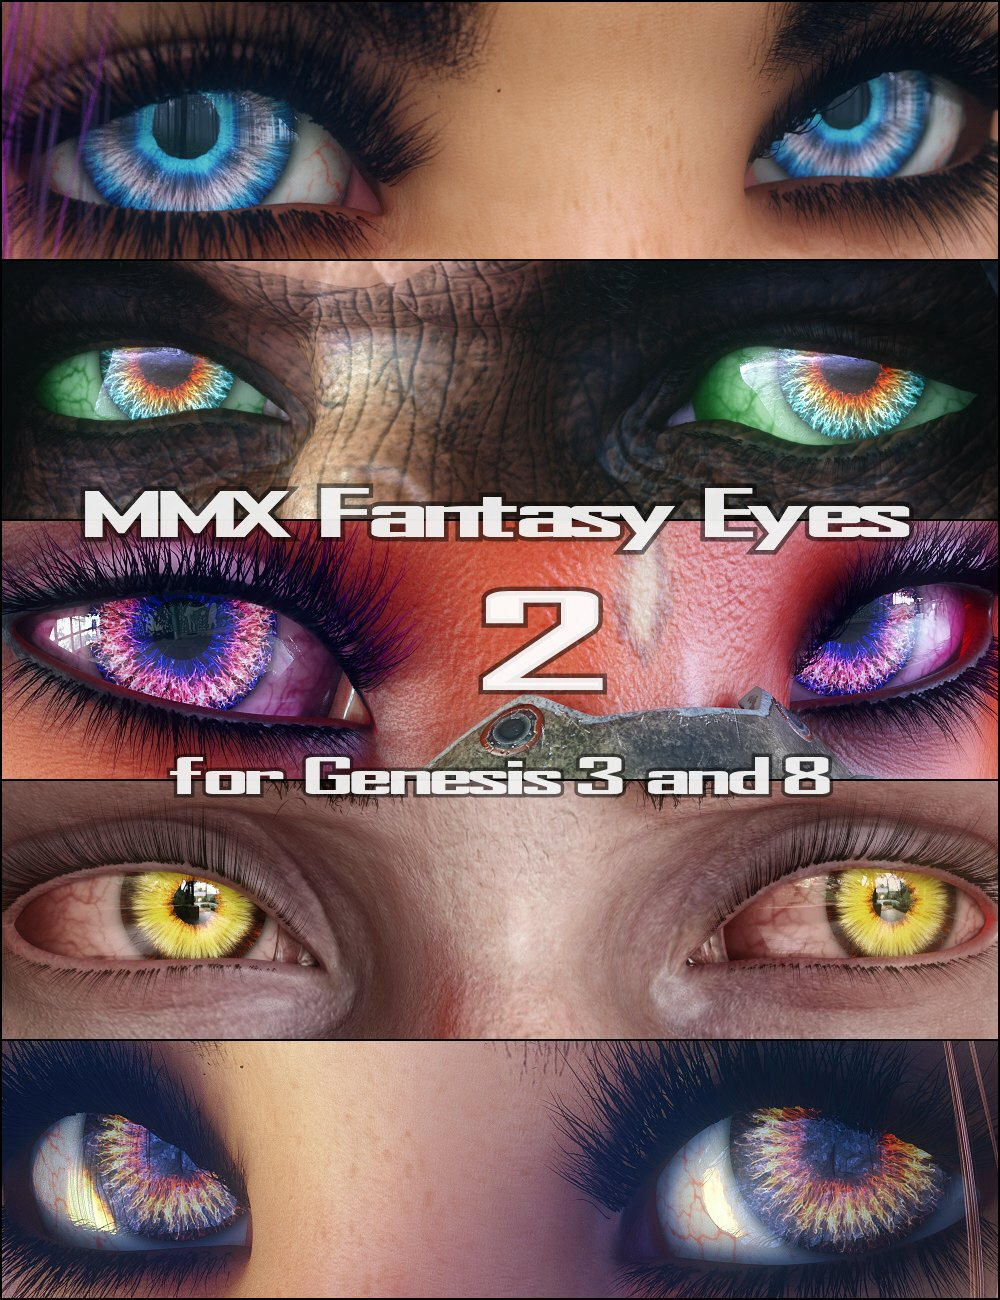 MMX Fantasy Eyes 2 for Genesis 3 and 8 by: Mattymanx, 3D Models by Daz 3D